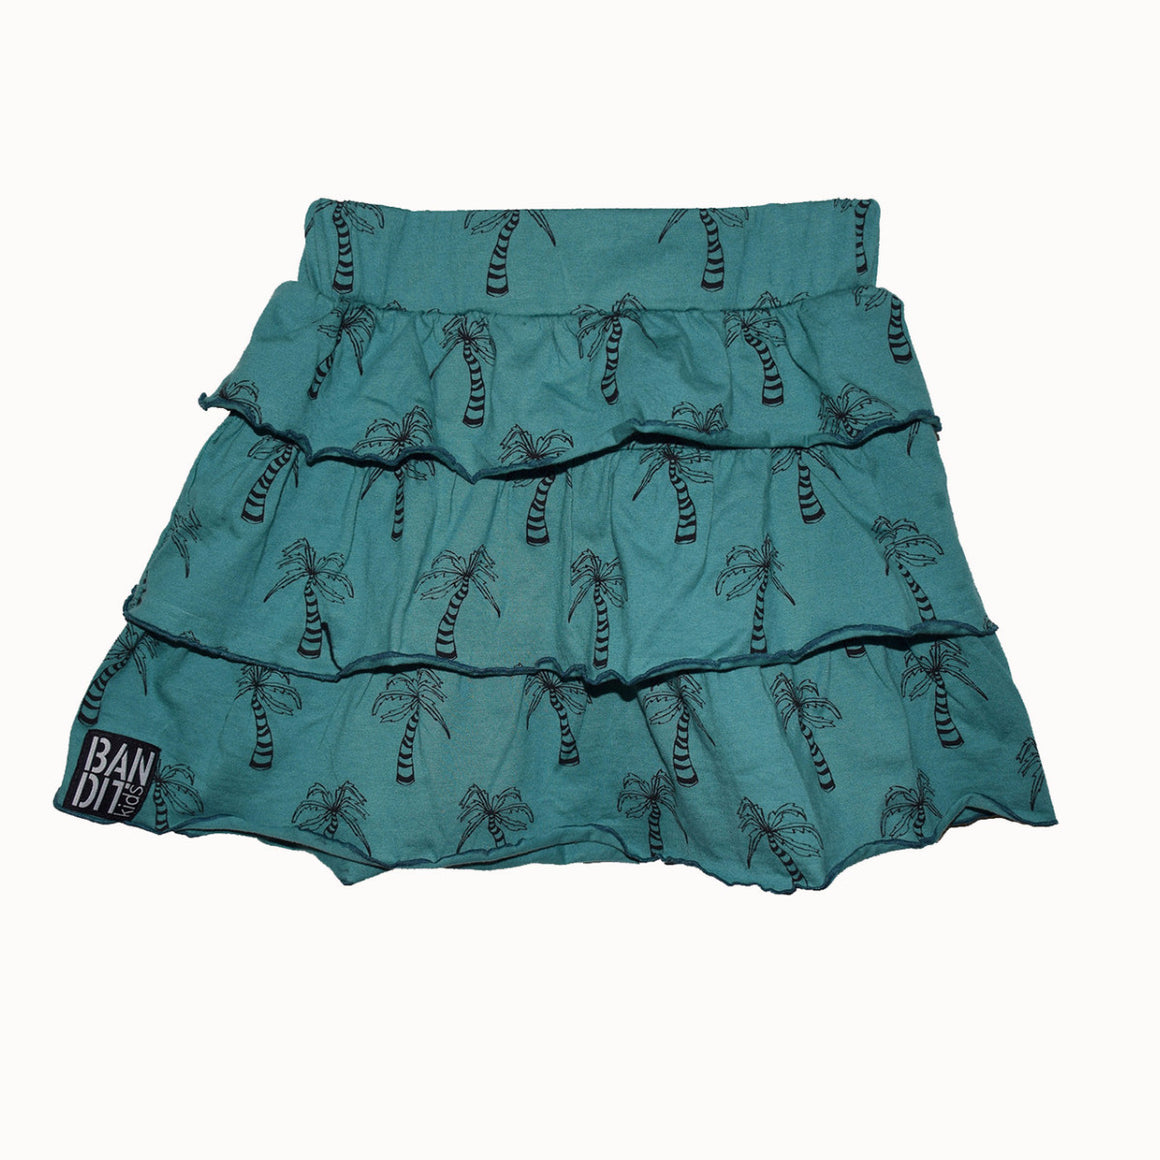 Bandit Kids Emerald Rah Rah Skirt